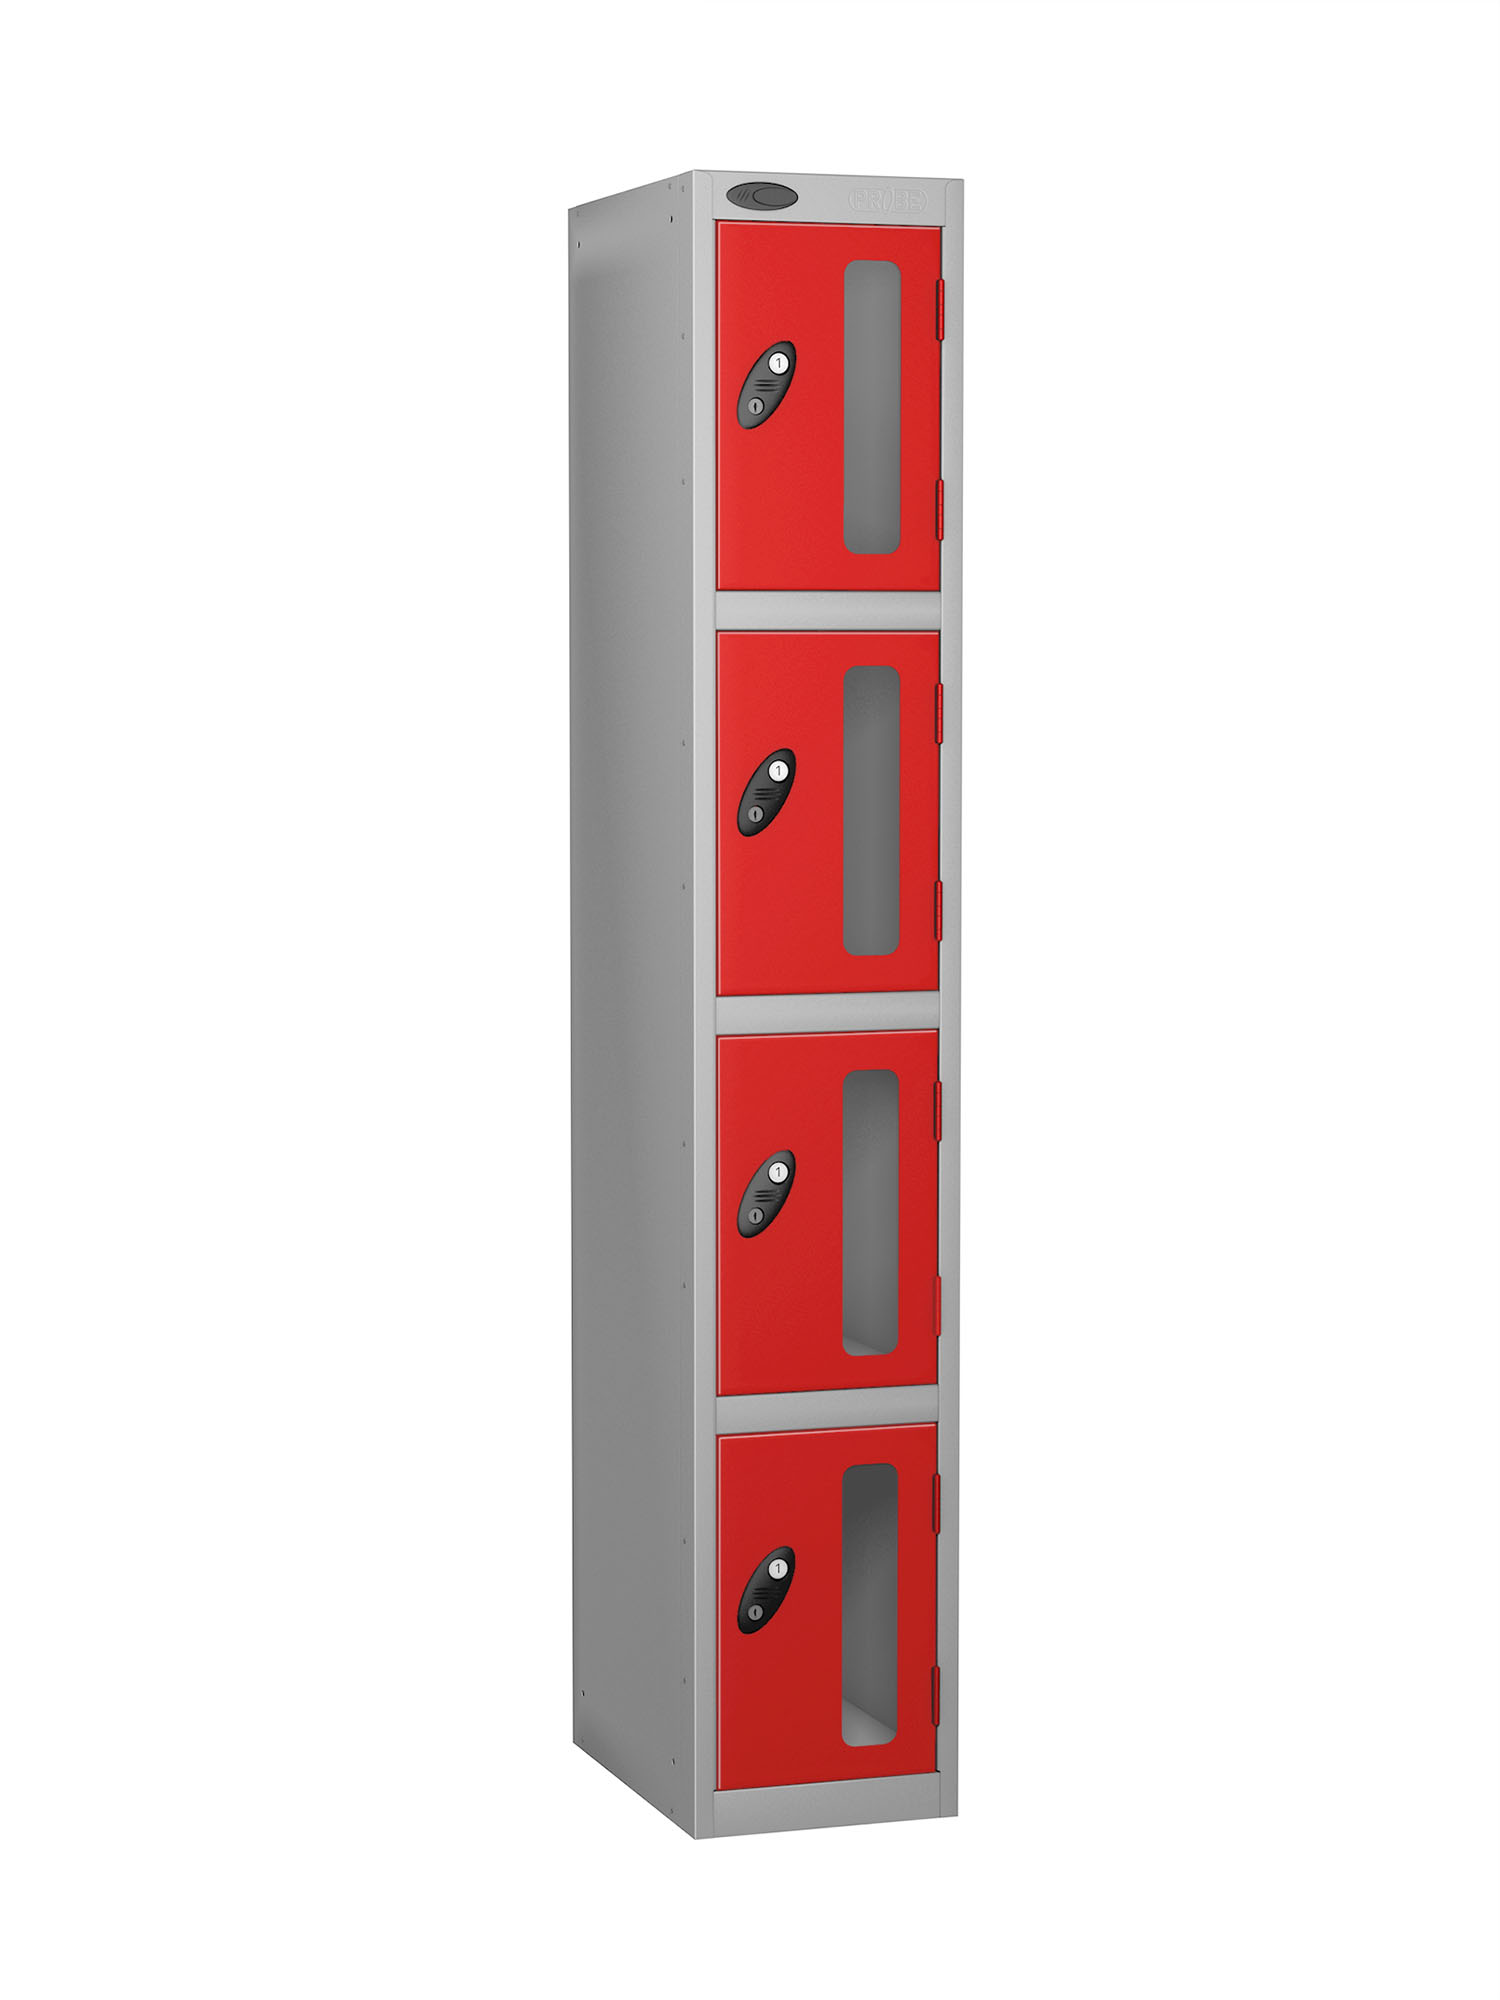 Probe 4 doors vision panel anti-stock theft locker red